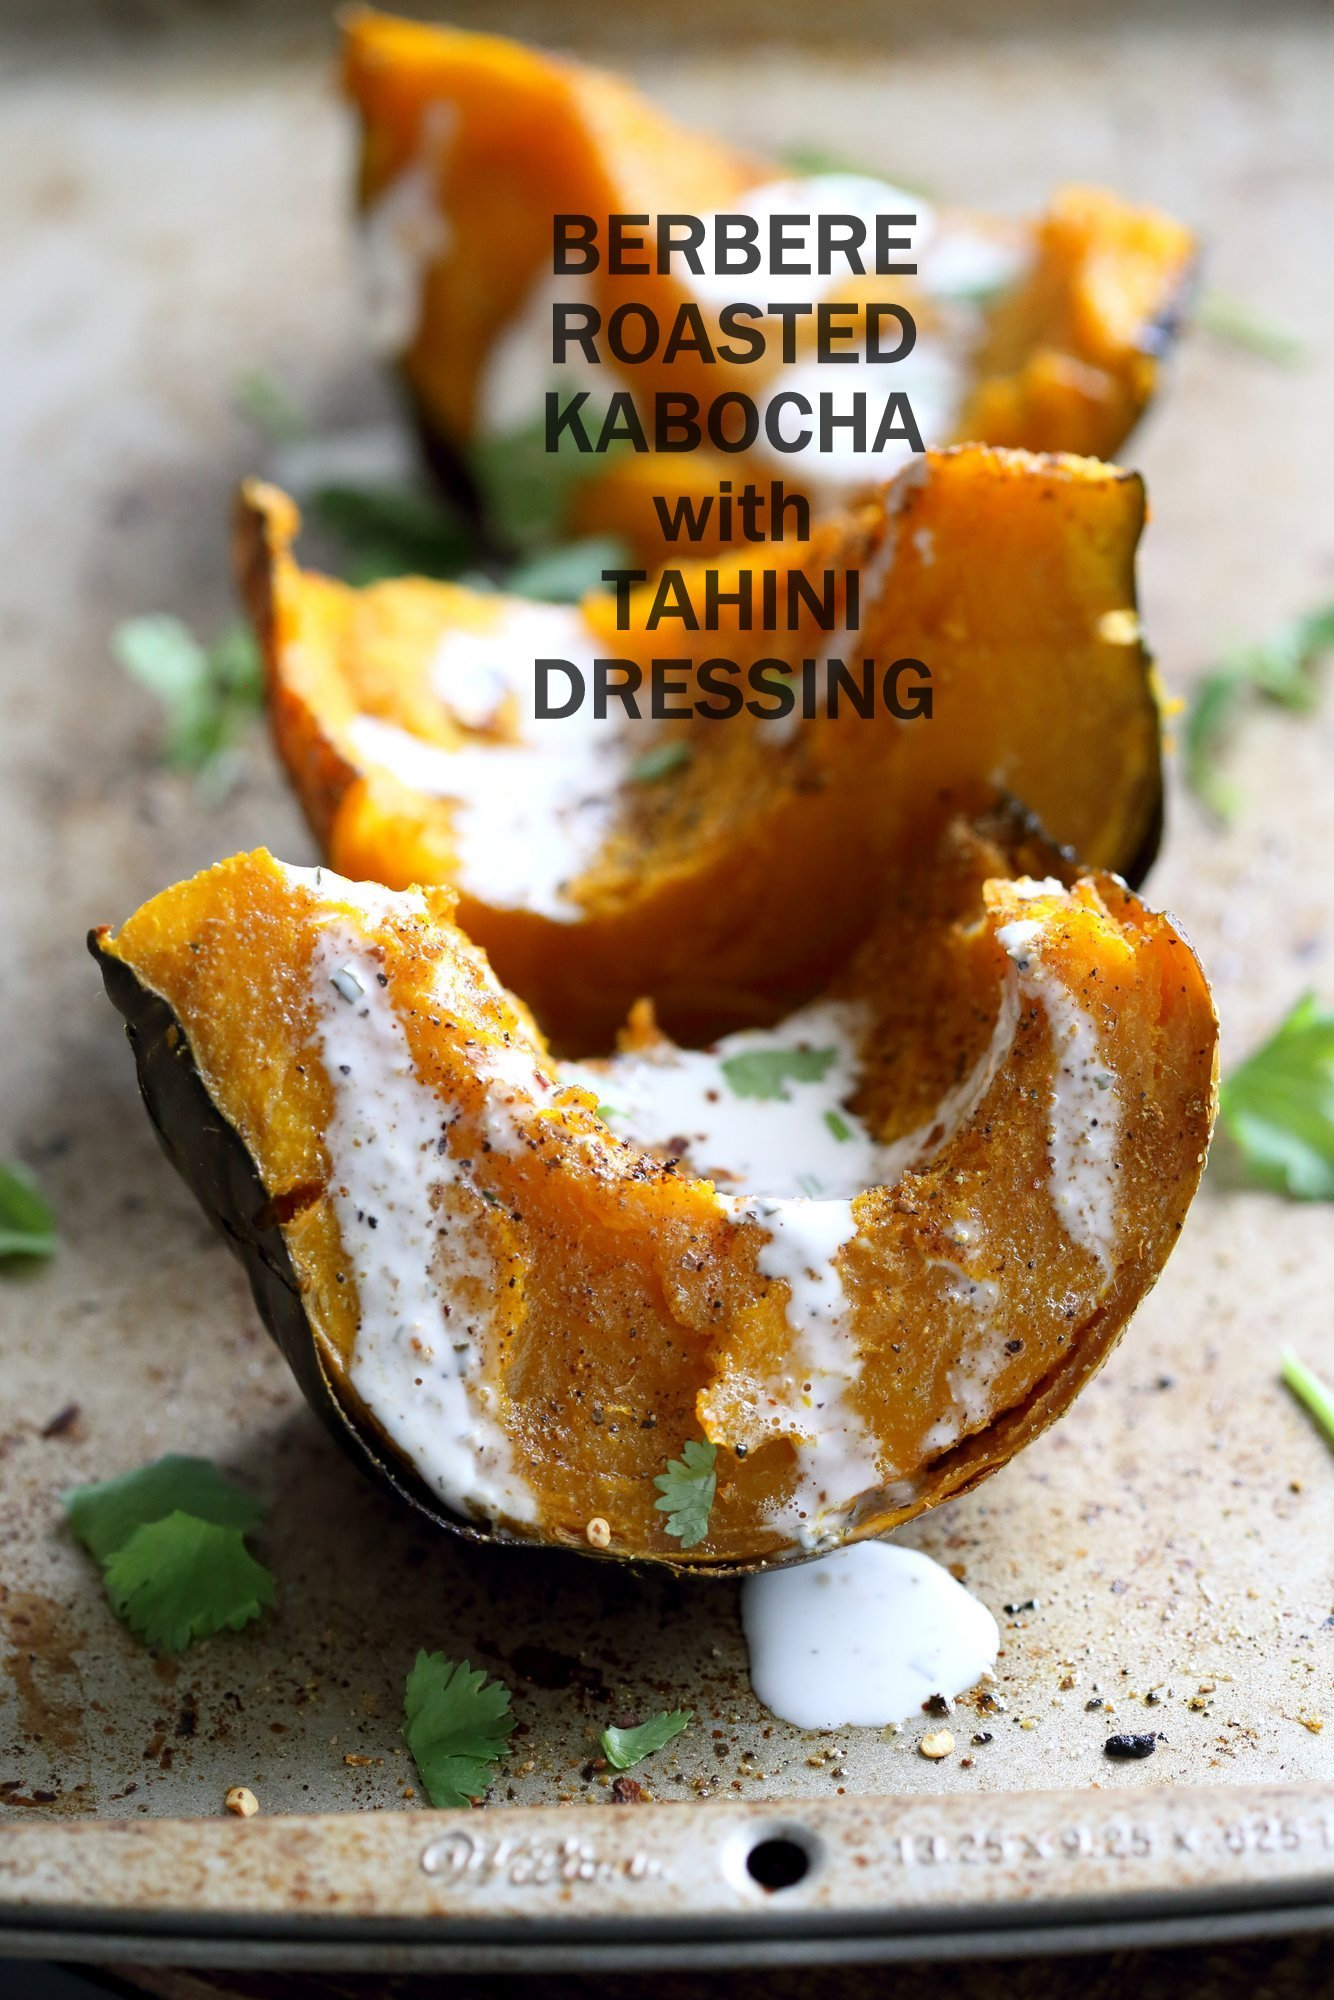 Berbere Roasted Kabocha Squash with Tahini Dill Dressing. Use ohter spice blends of choice. Festive, spiced winter squash. Add cranberries or other dried fruit. #Vegan #Glutenfree #Soyfree #Recipe #veganricha | VeganRicha.com